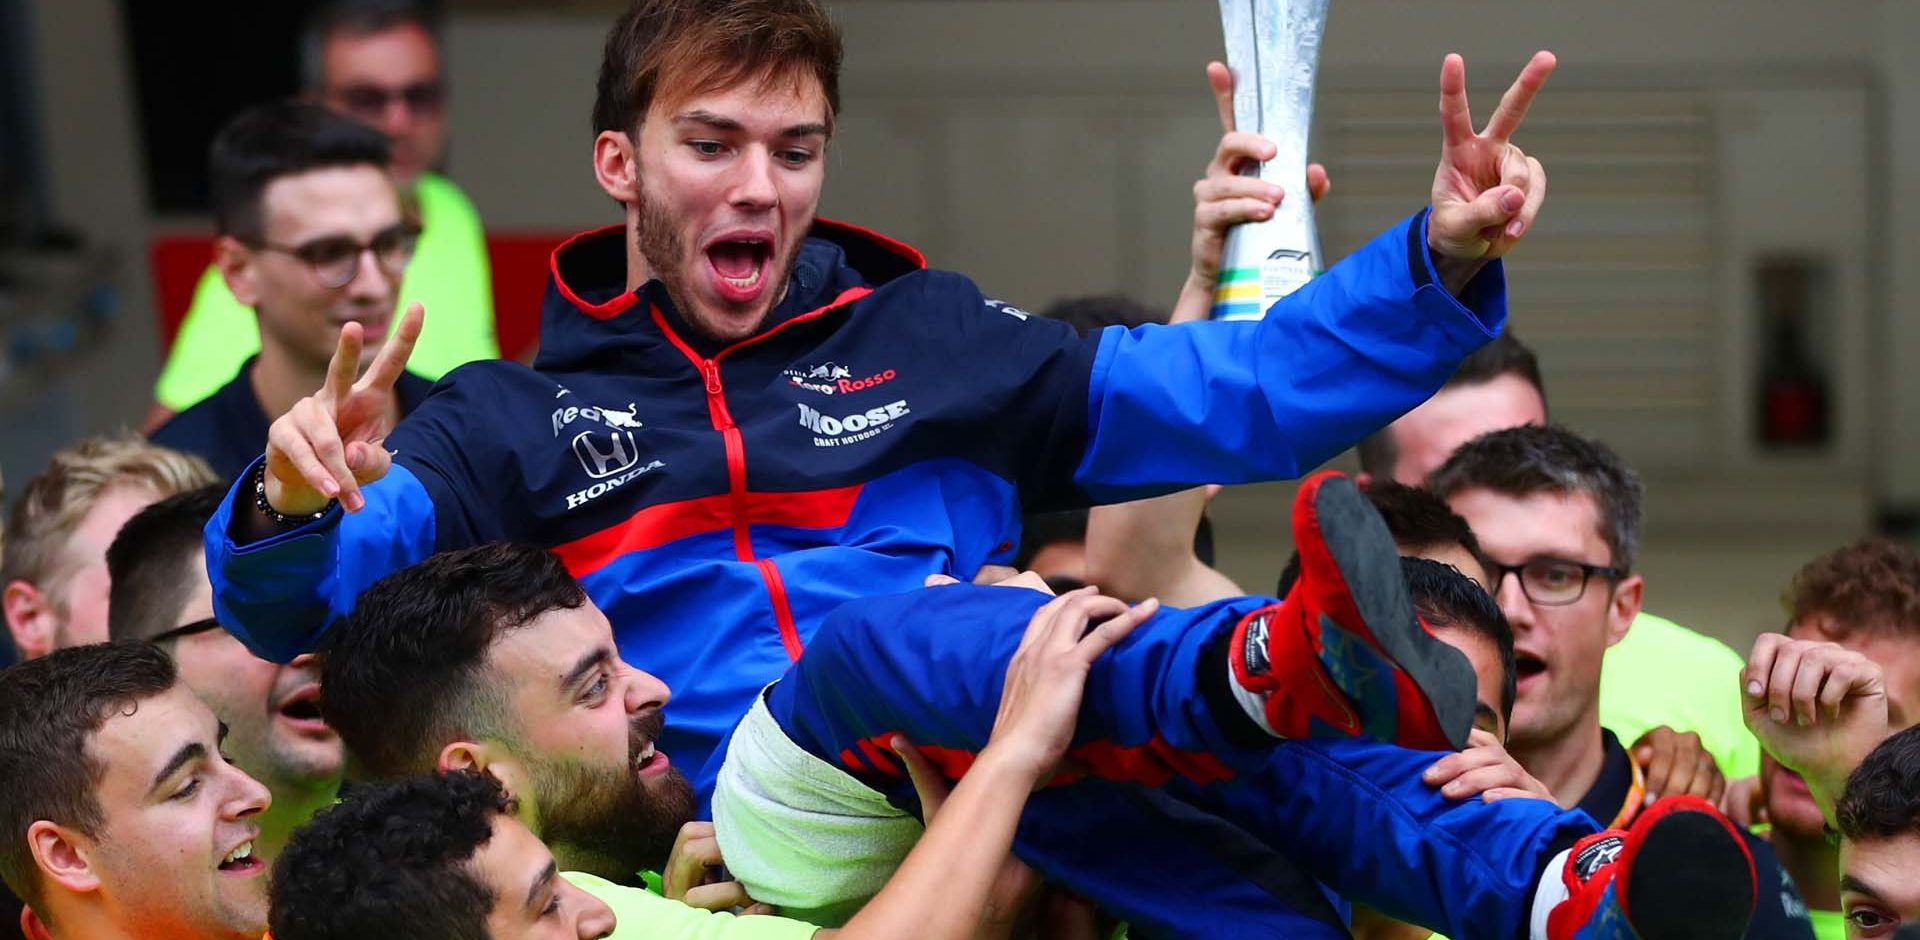 SAO PAULO, BRAZIL - NOVEMBER 17: Second placed Pierre Gasly of France and Scuderia Toro Rosso celebrates with his team after the F1 Grand Prix of Brazil at Autodromo Jose Carlos Pace on November 17, 2019 in Sao Paulo, Brazil. (Photo by Dan Istitene/Getty Images) // Getty Images / Red Bull Content Pool  // AP-227E49VTN2111 // Usage for editorial use only //